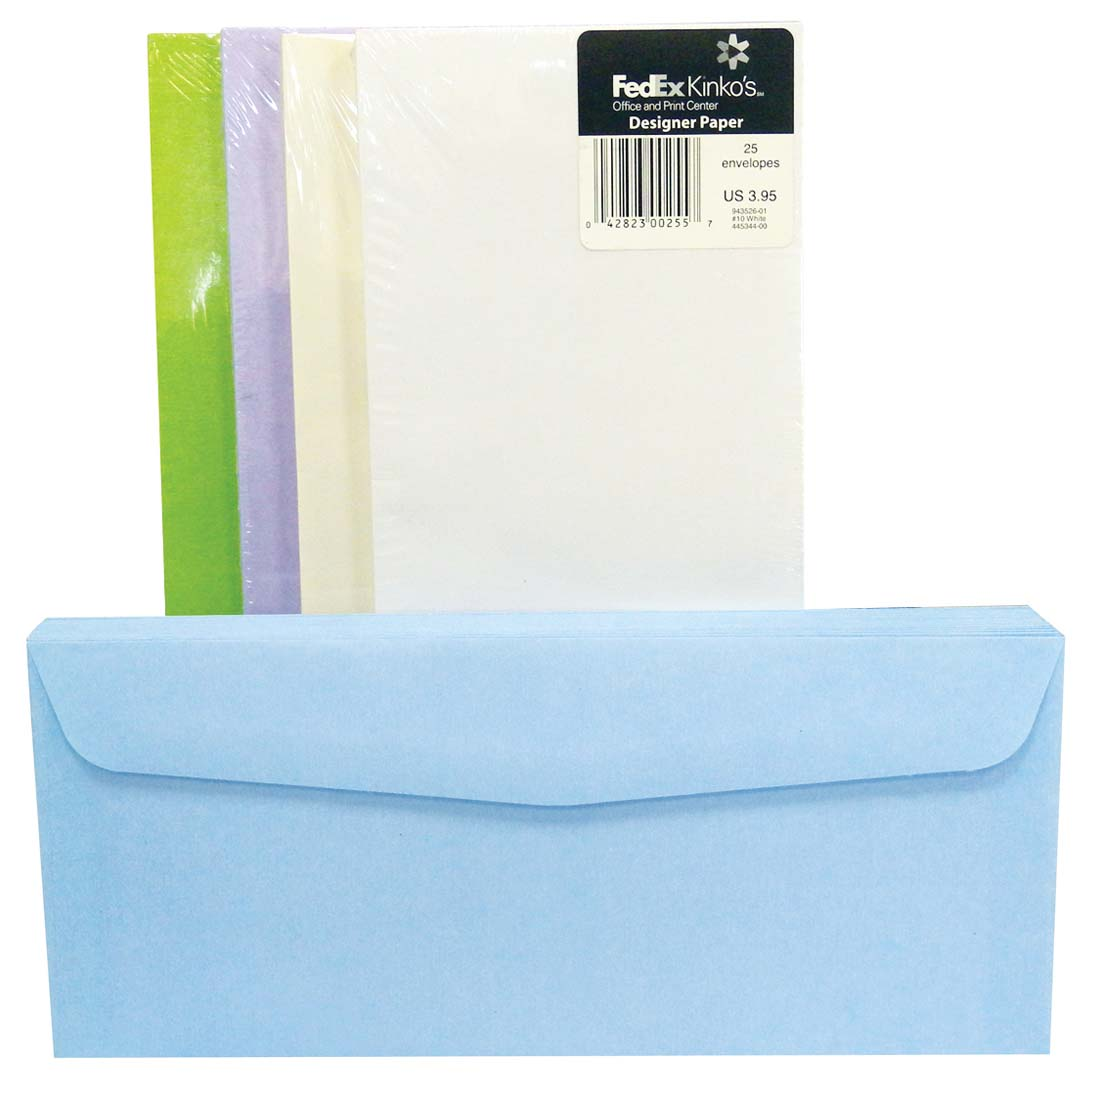 View FAMOUS BRANDS ENVELOPES 25 CT #10 ASSORTED COLORS PREPRICED $3.95